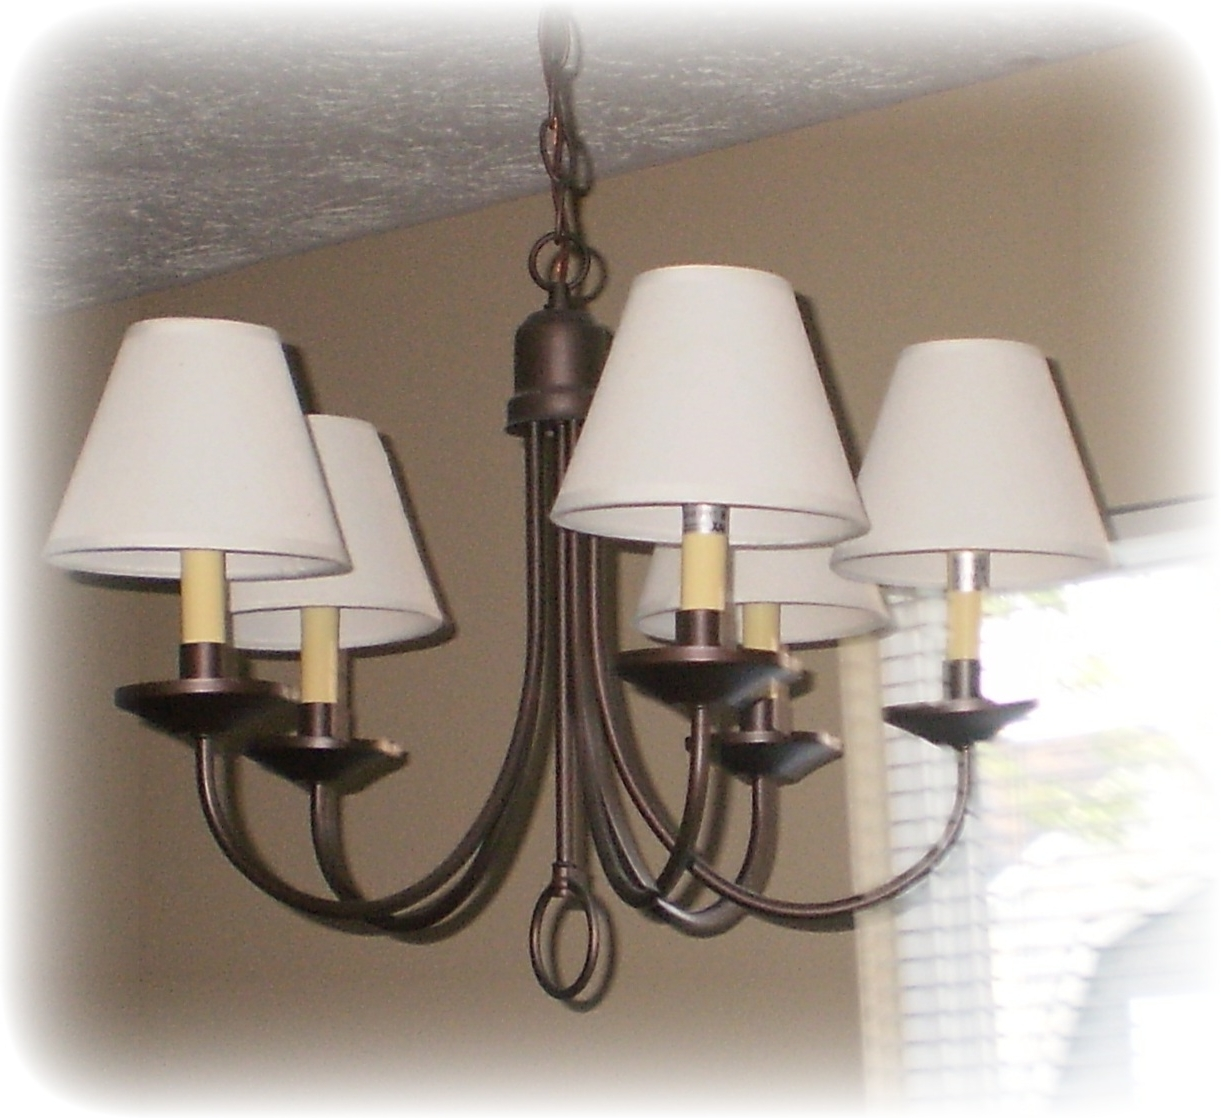 Lampshades For Chandeliers In 2018 Furniture : Mini Chandelier Shades Discount Fabulous 8 Mini (View 12 of 15)